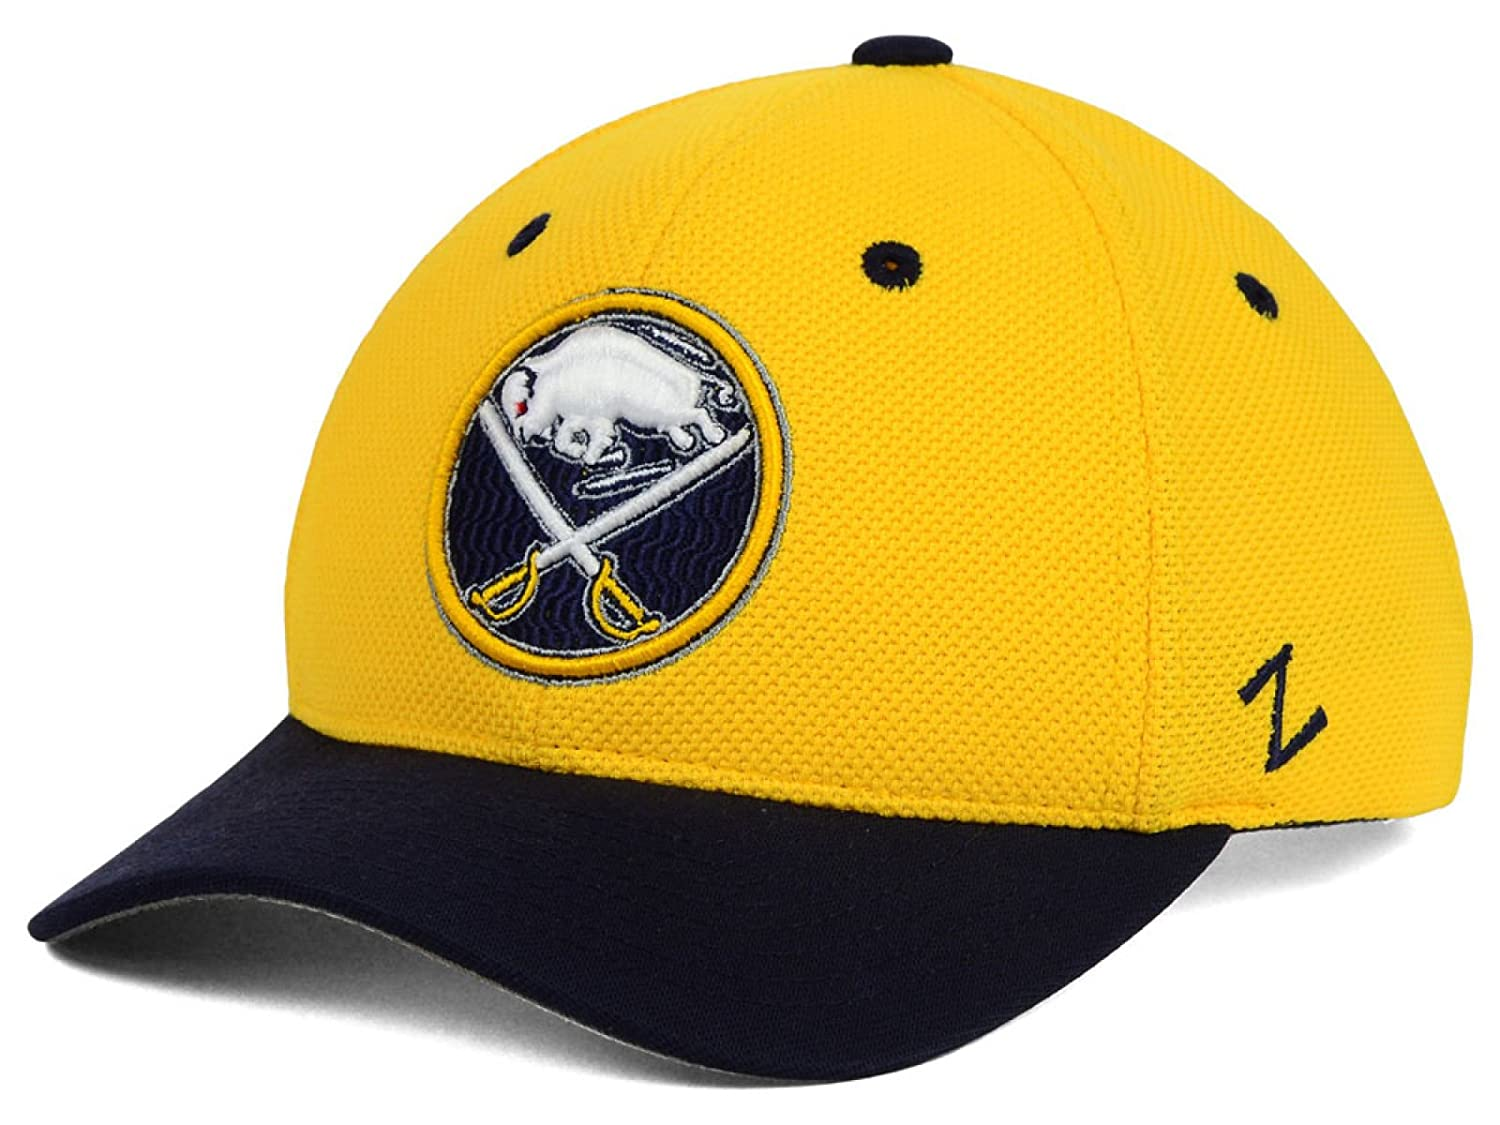 5ec7ec07a21 Buy Buffalo Sabres NHL Zephyr Youth Tyke Snapback Adjustable Yellow Navy Hat  Online at Low Prices in India - Amazon.in